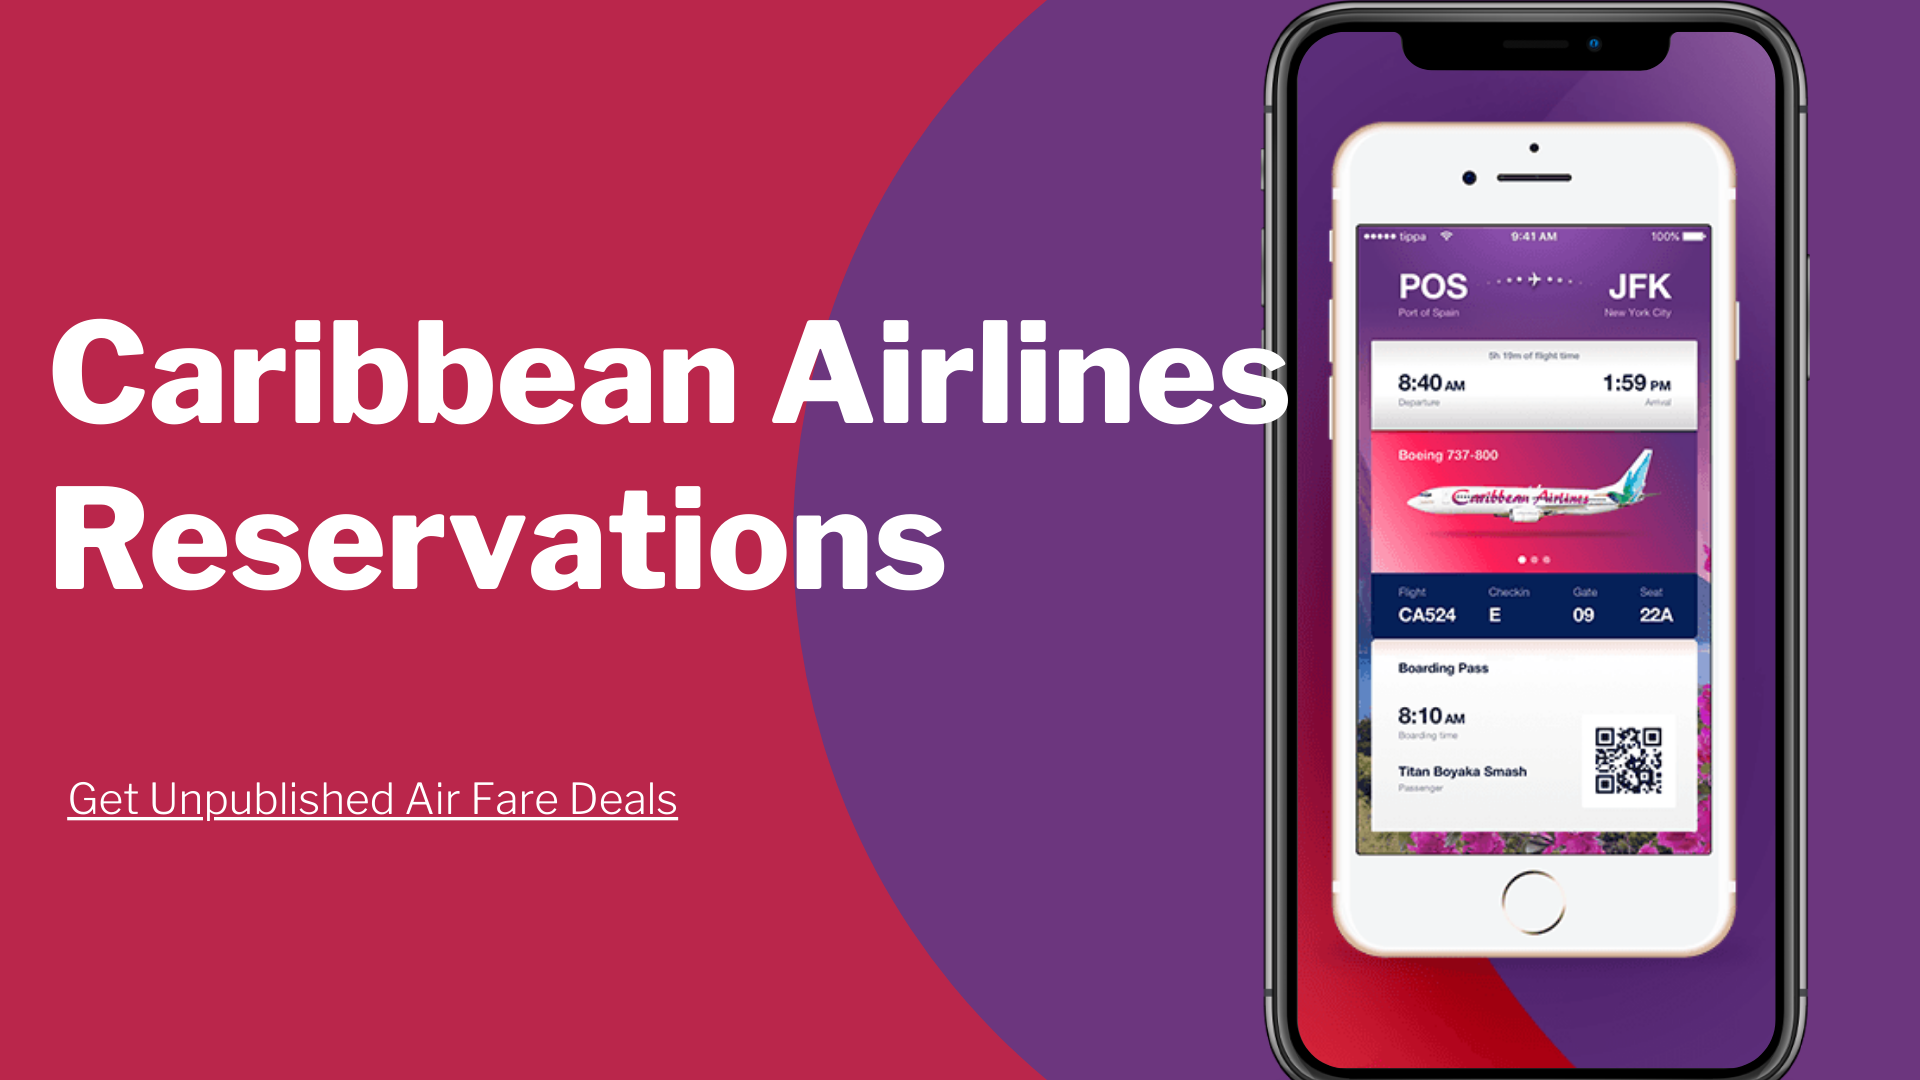 Book cheap flights tickets and get the best Deals for your Caribbean flight reservations. Connect with a live agents and get unpublished airfare deals with a huge discount.